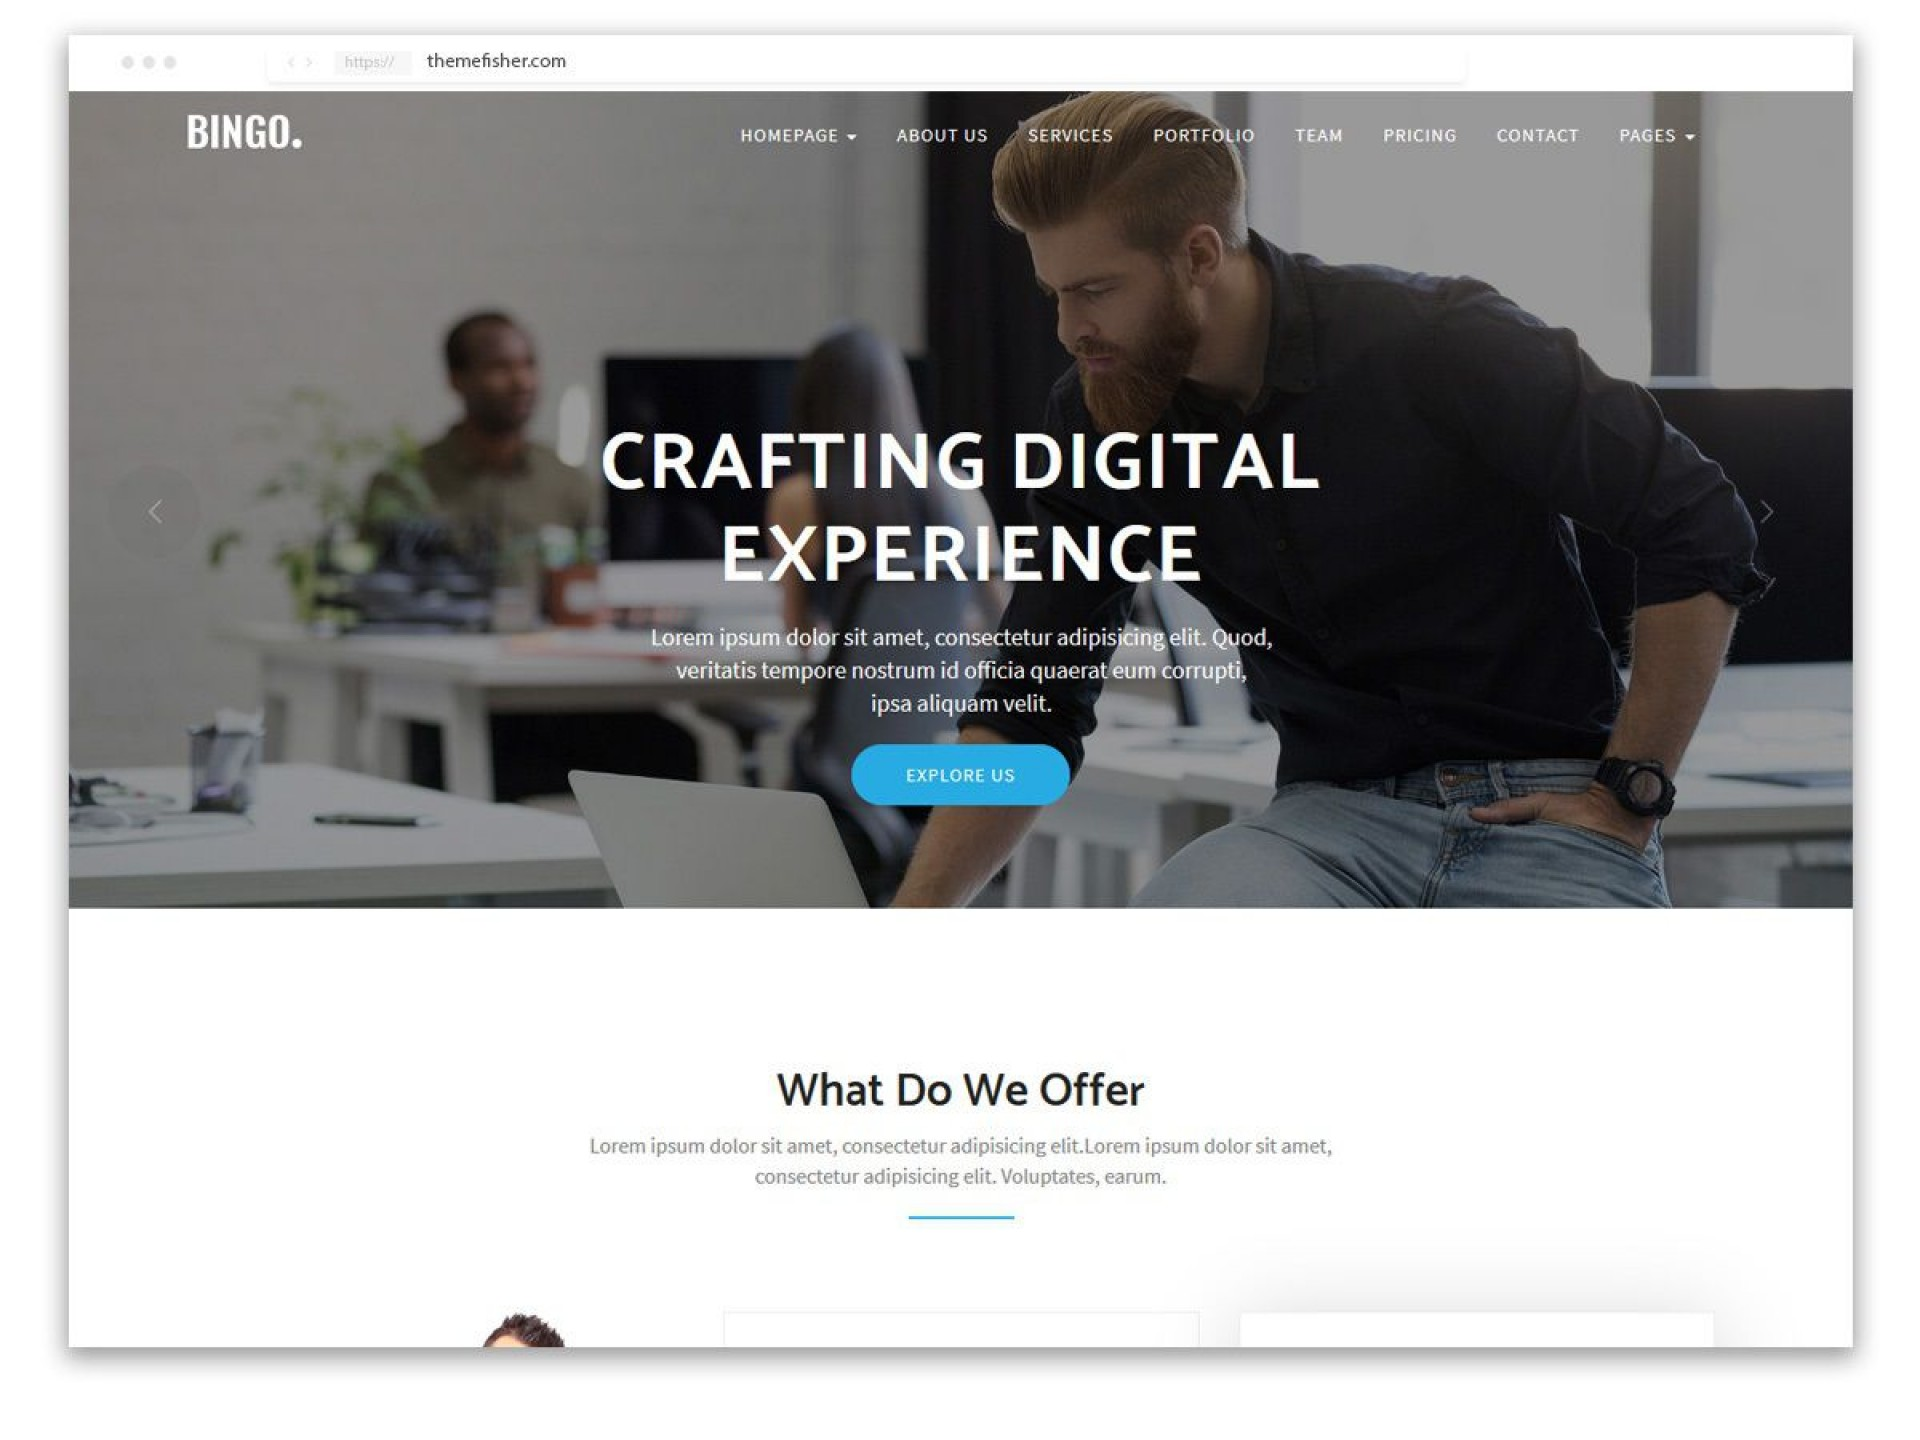 001 Formidable One Page Website Template Free Download Html5 Idea  Parallax1920